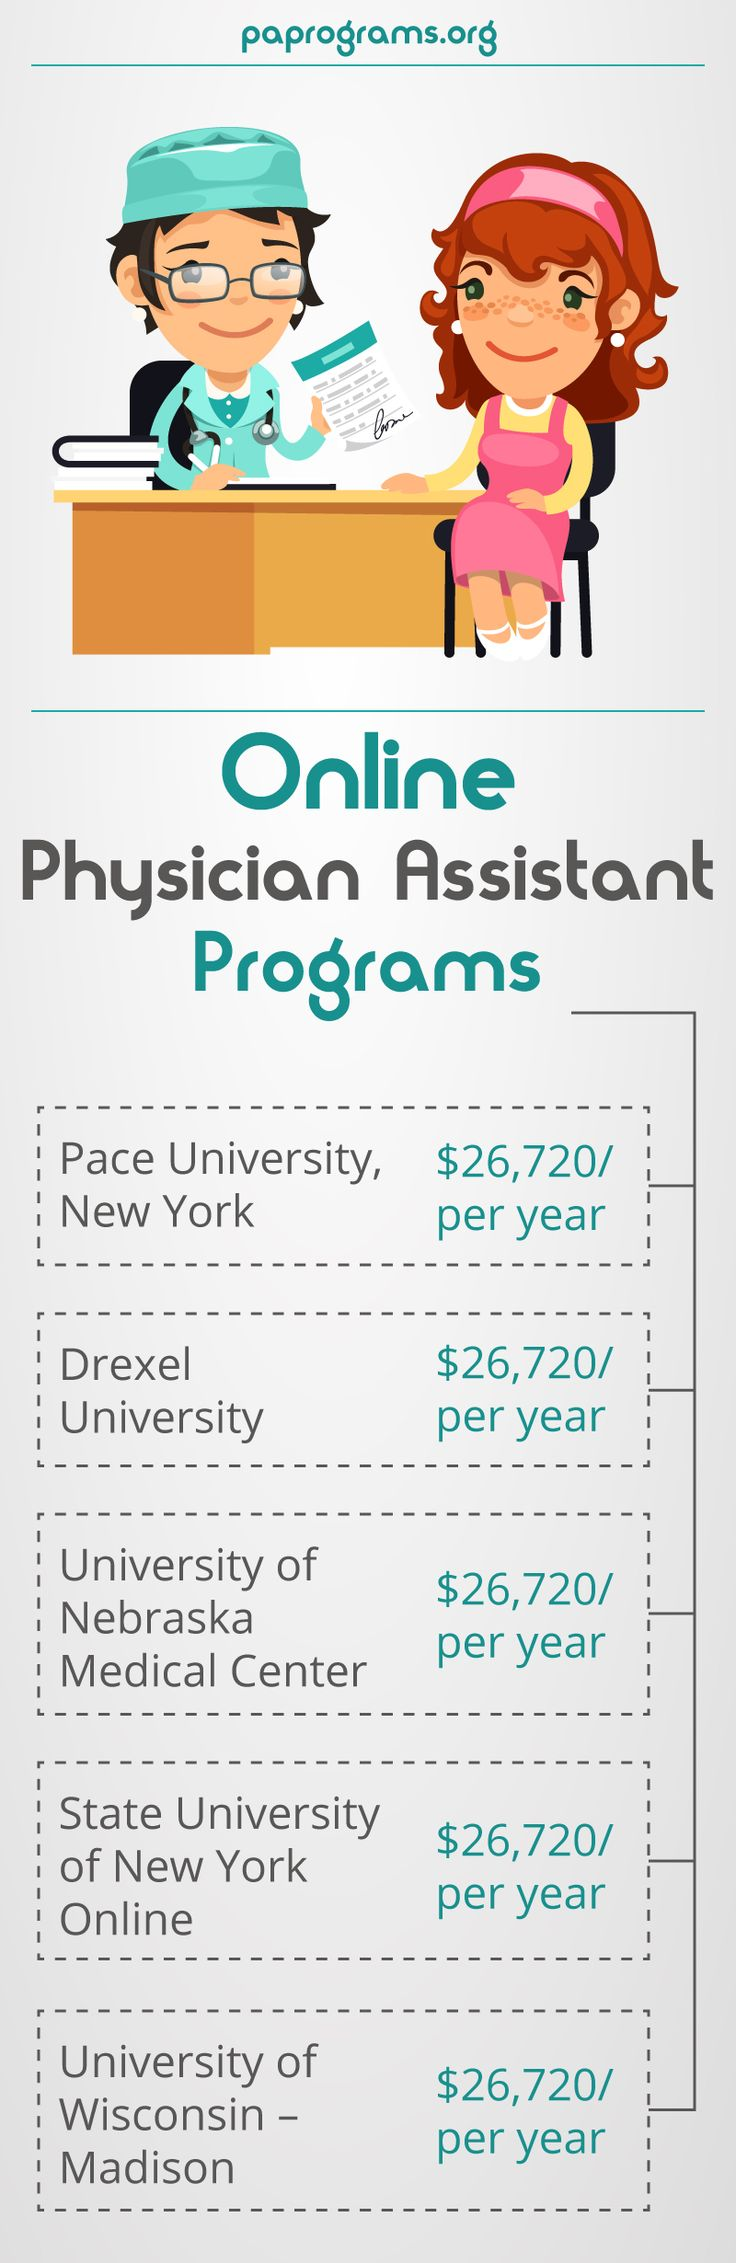 online physician assistant programs